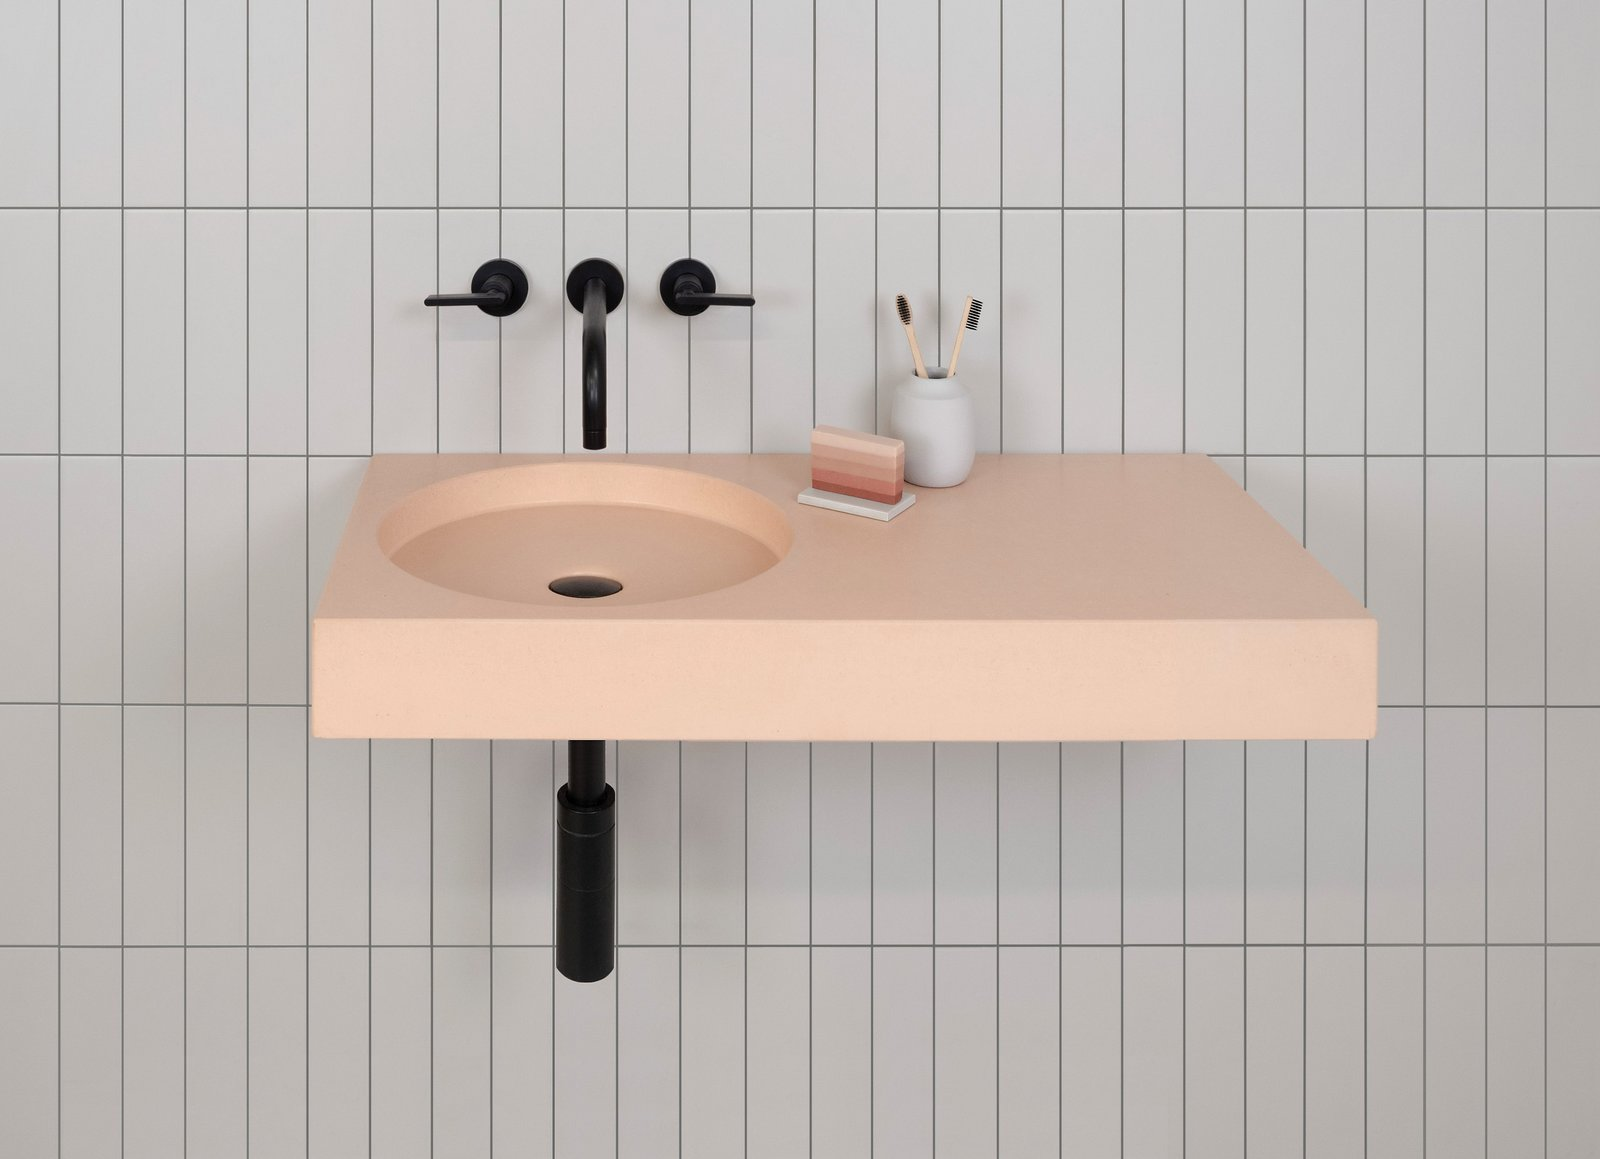 Bath Room and Wall Mount Sink Cero offers an offset vanity and a circular bowl.  Photos from Trend Report: Bathroom Fixtures Go Bold in a Rainbow of Retro Hues